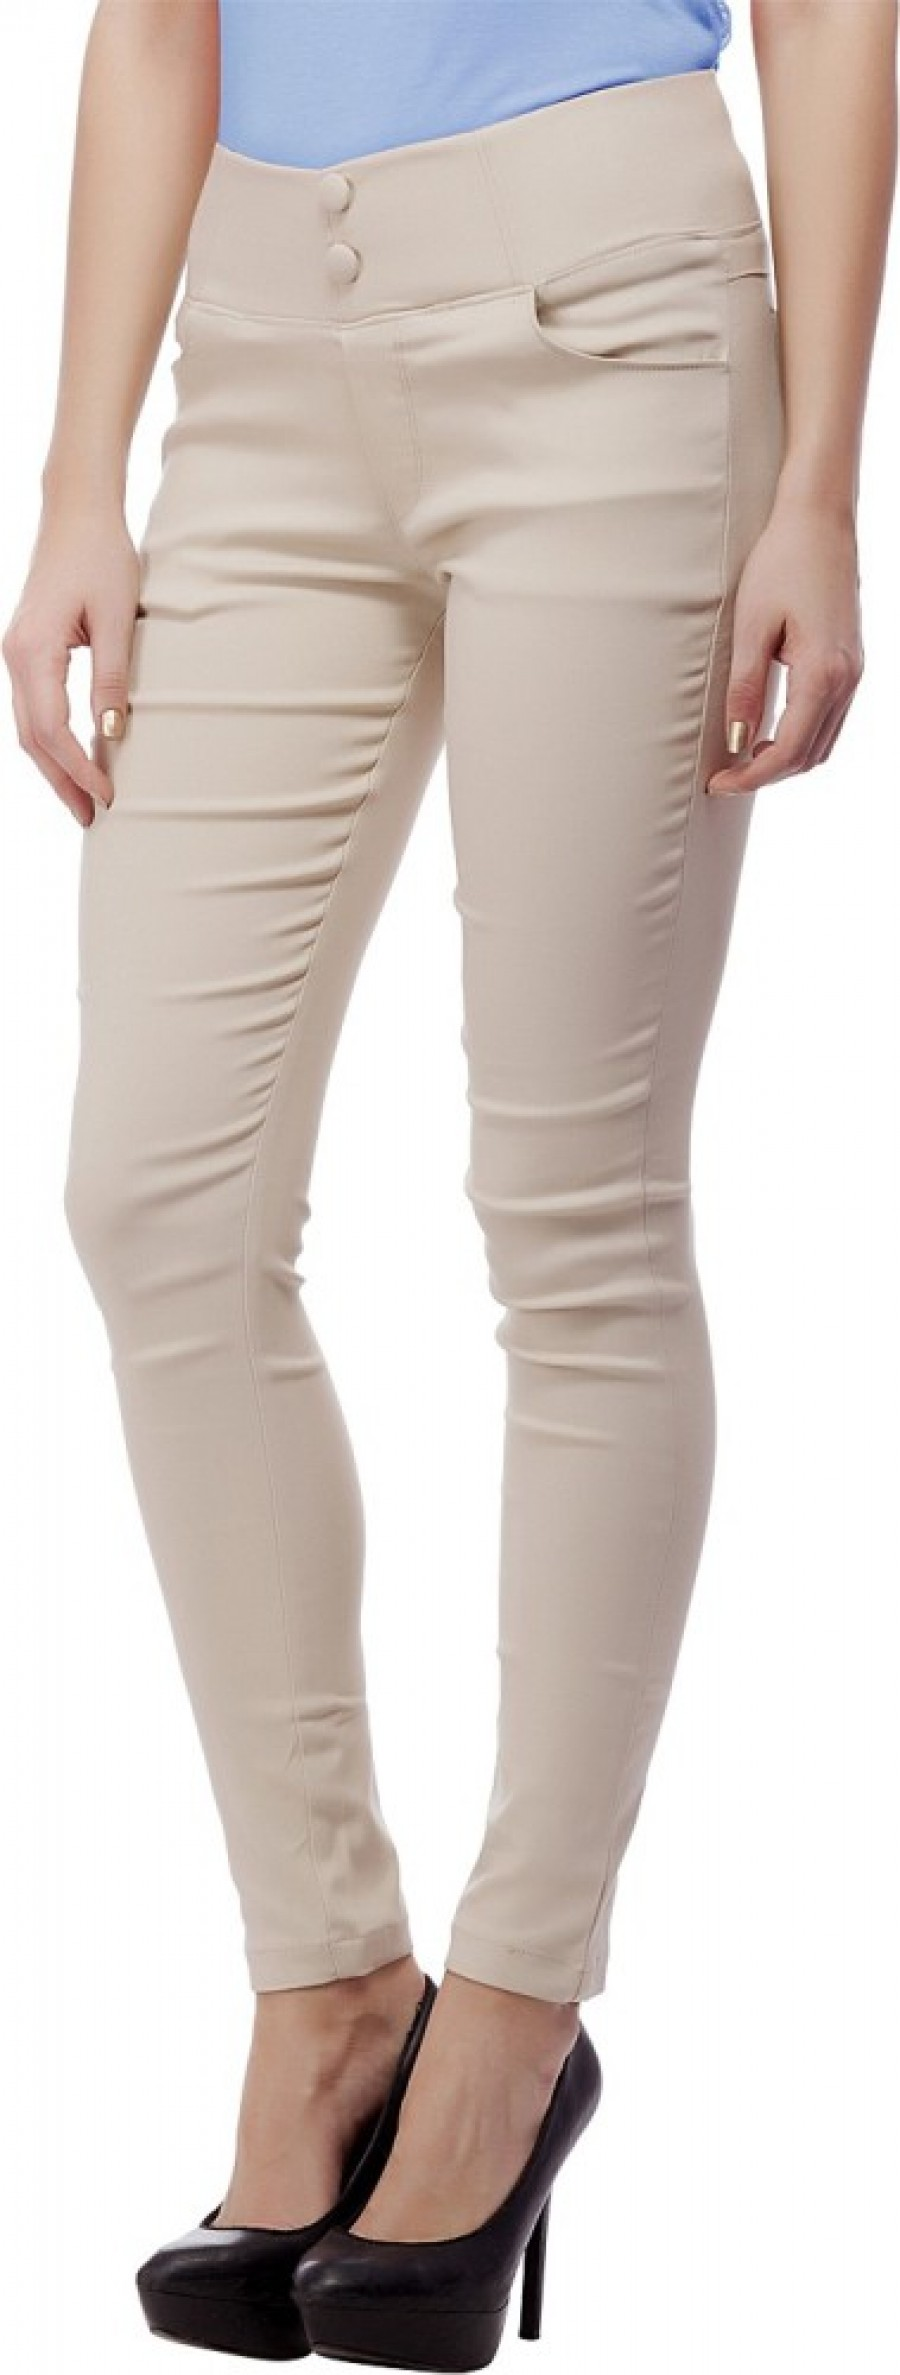 Buy Purple Feather Women Beige Jeggings Online